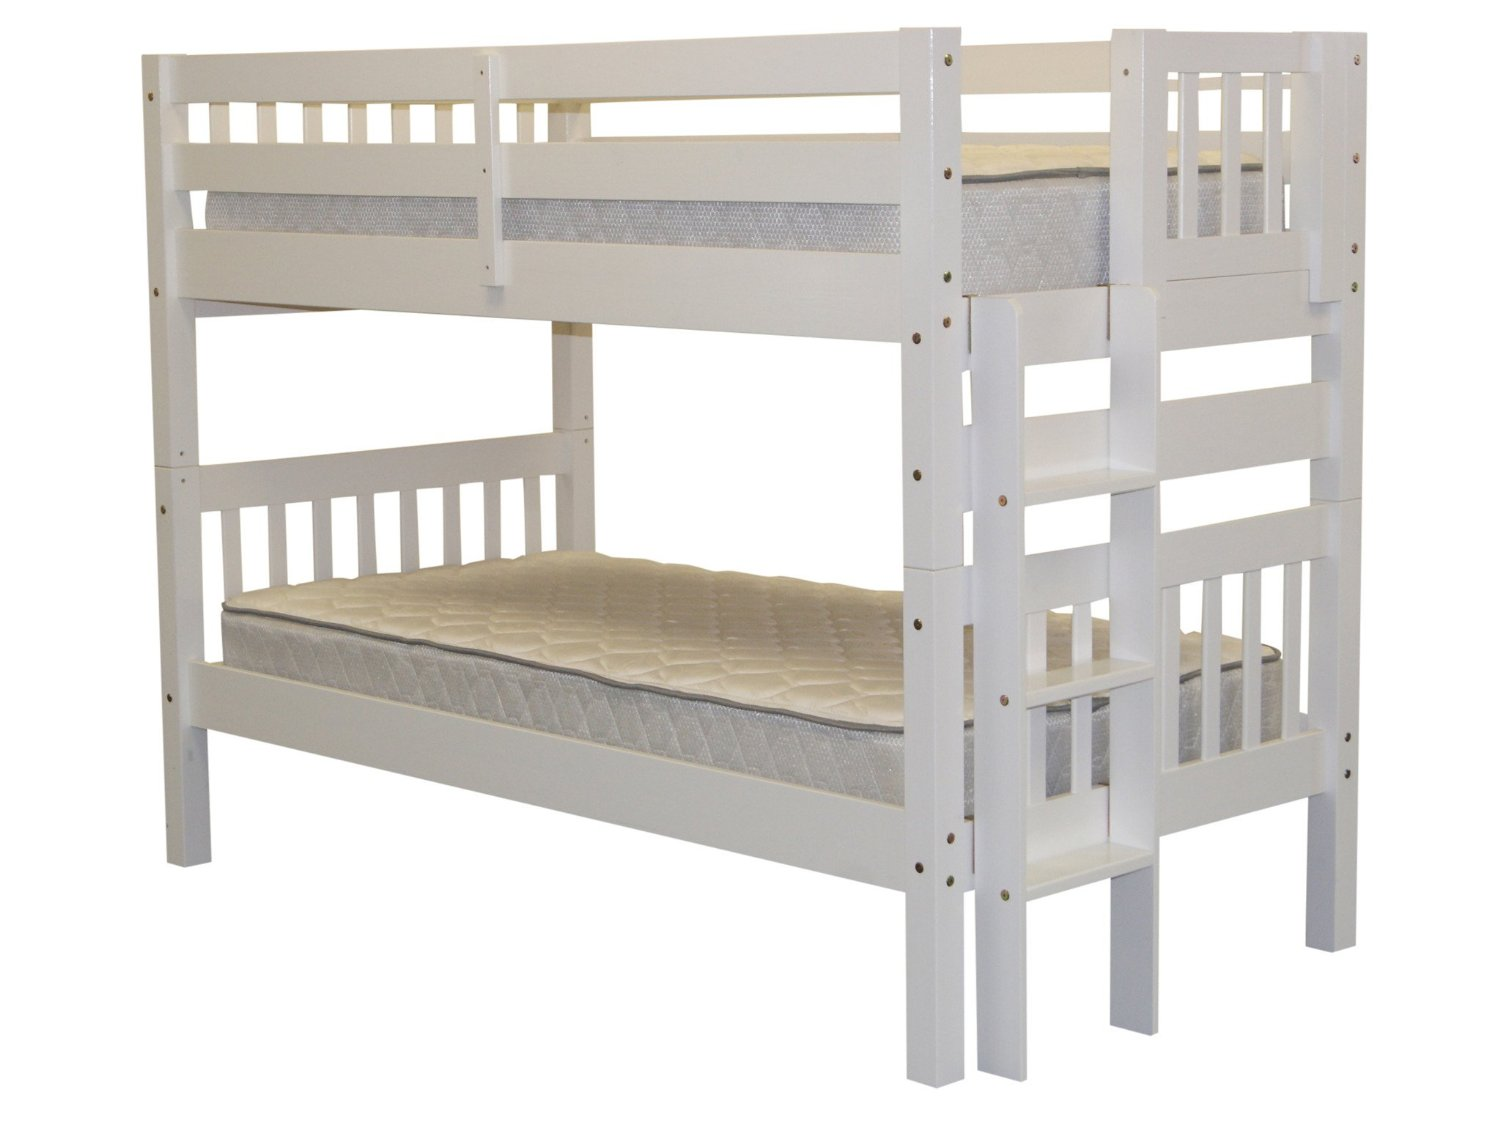 Bedz King Bunk Beds Twin over Twin Mission Style with End Ladder, White